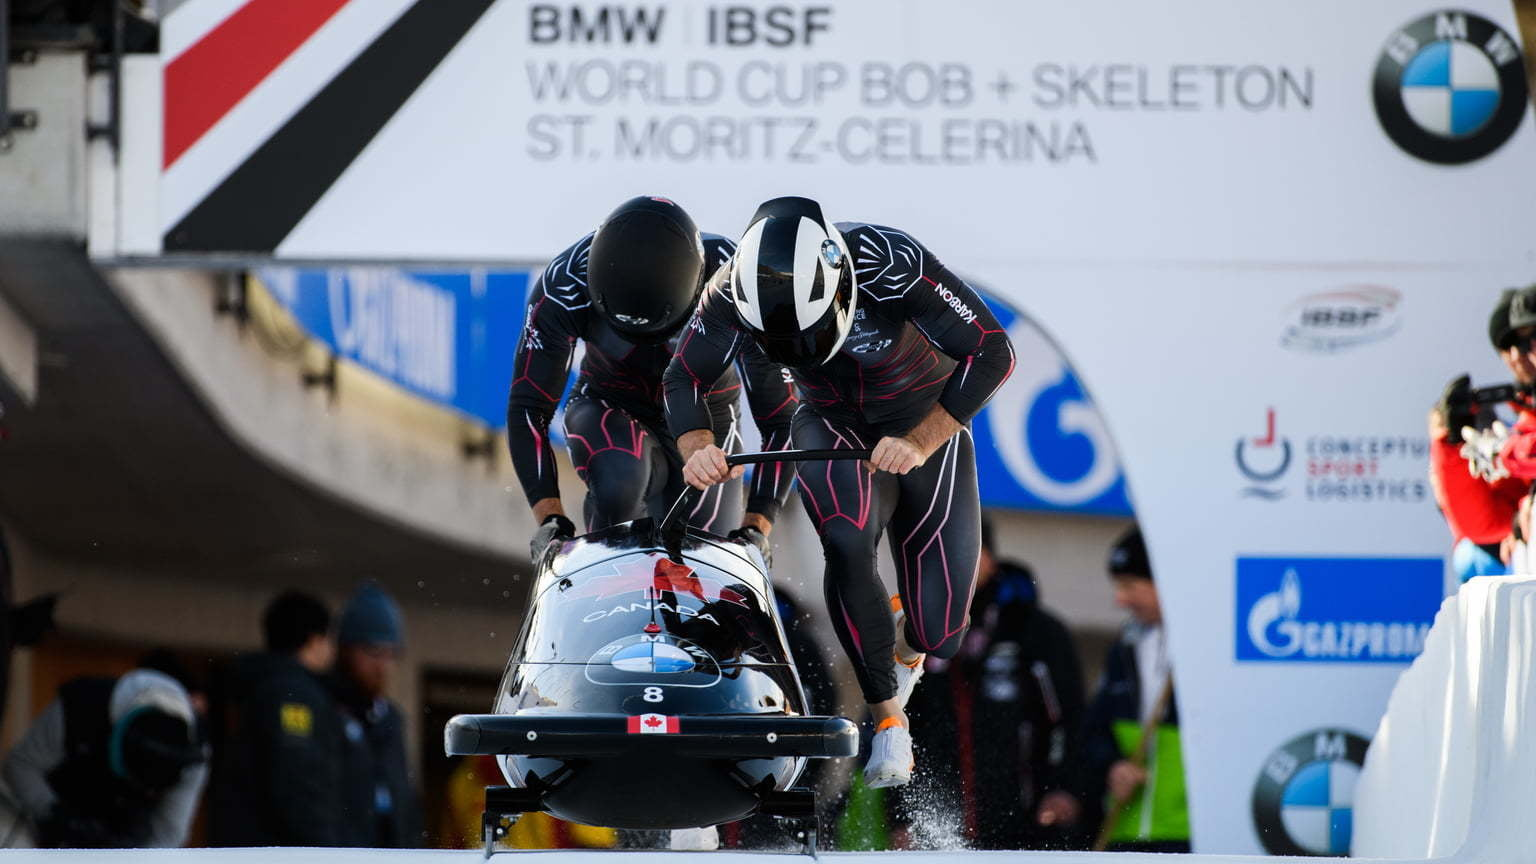 BMW IBSF WORLD CUP: BOBSLEIGH & SKELETON